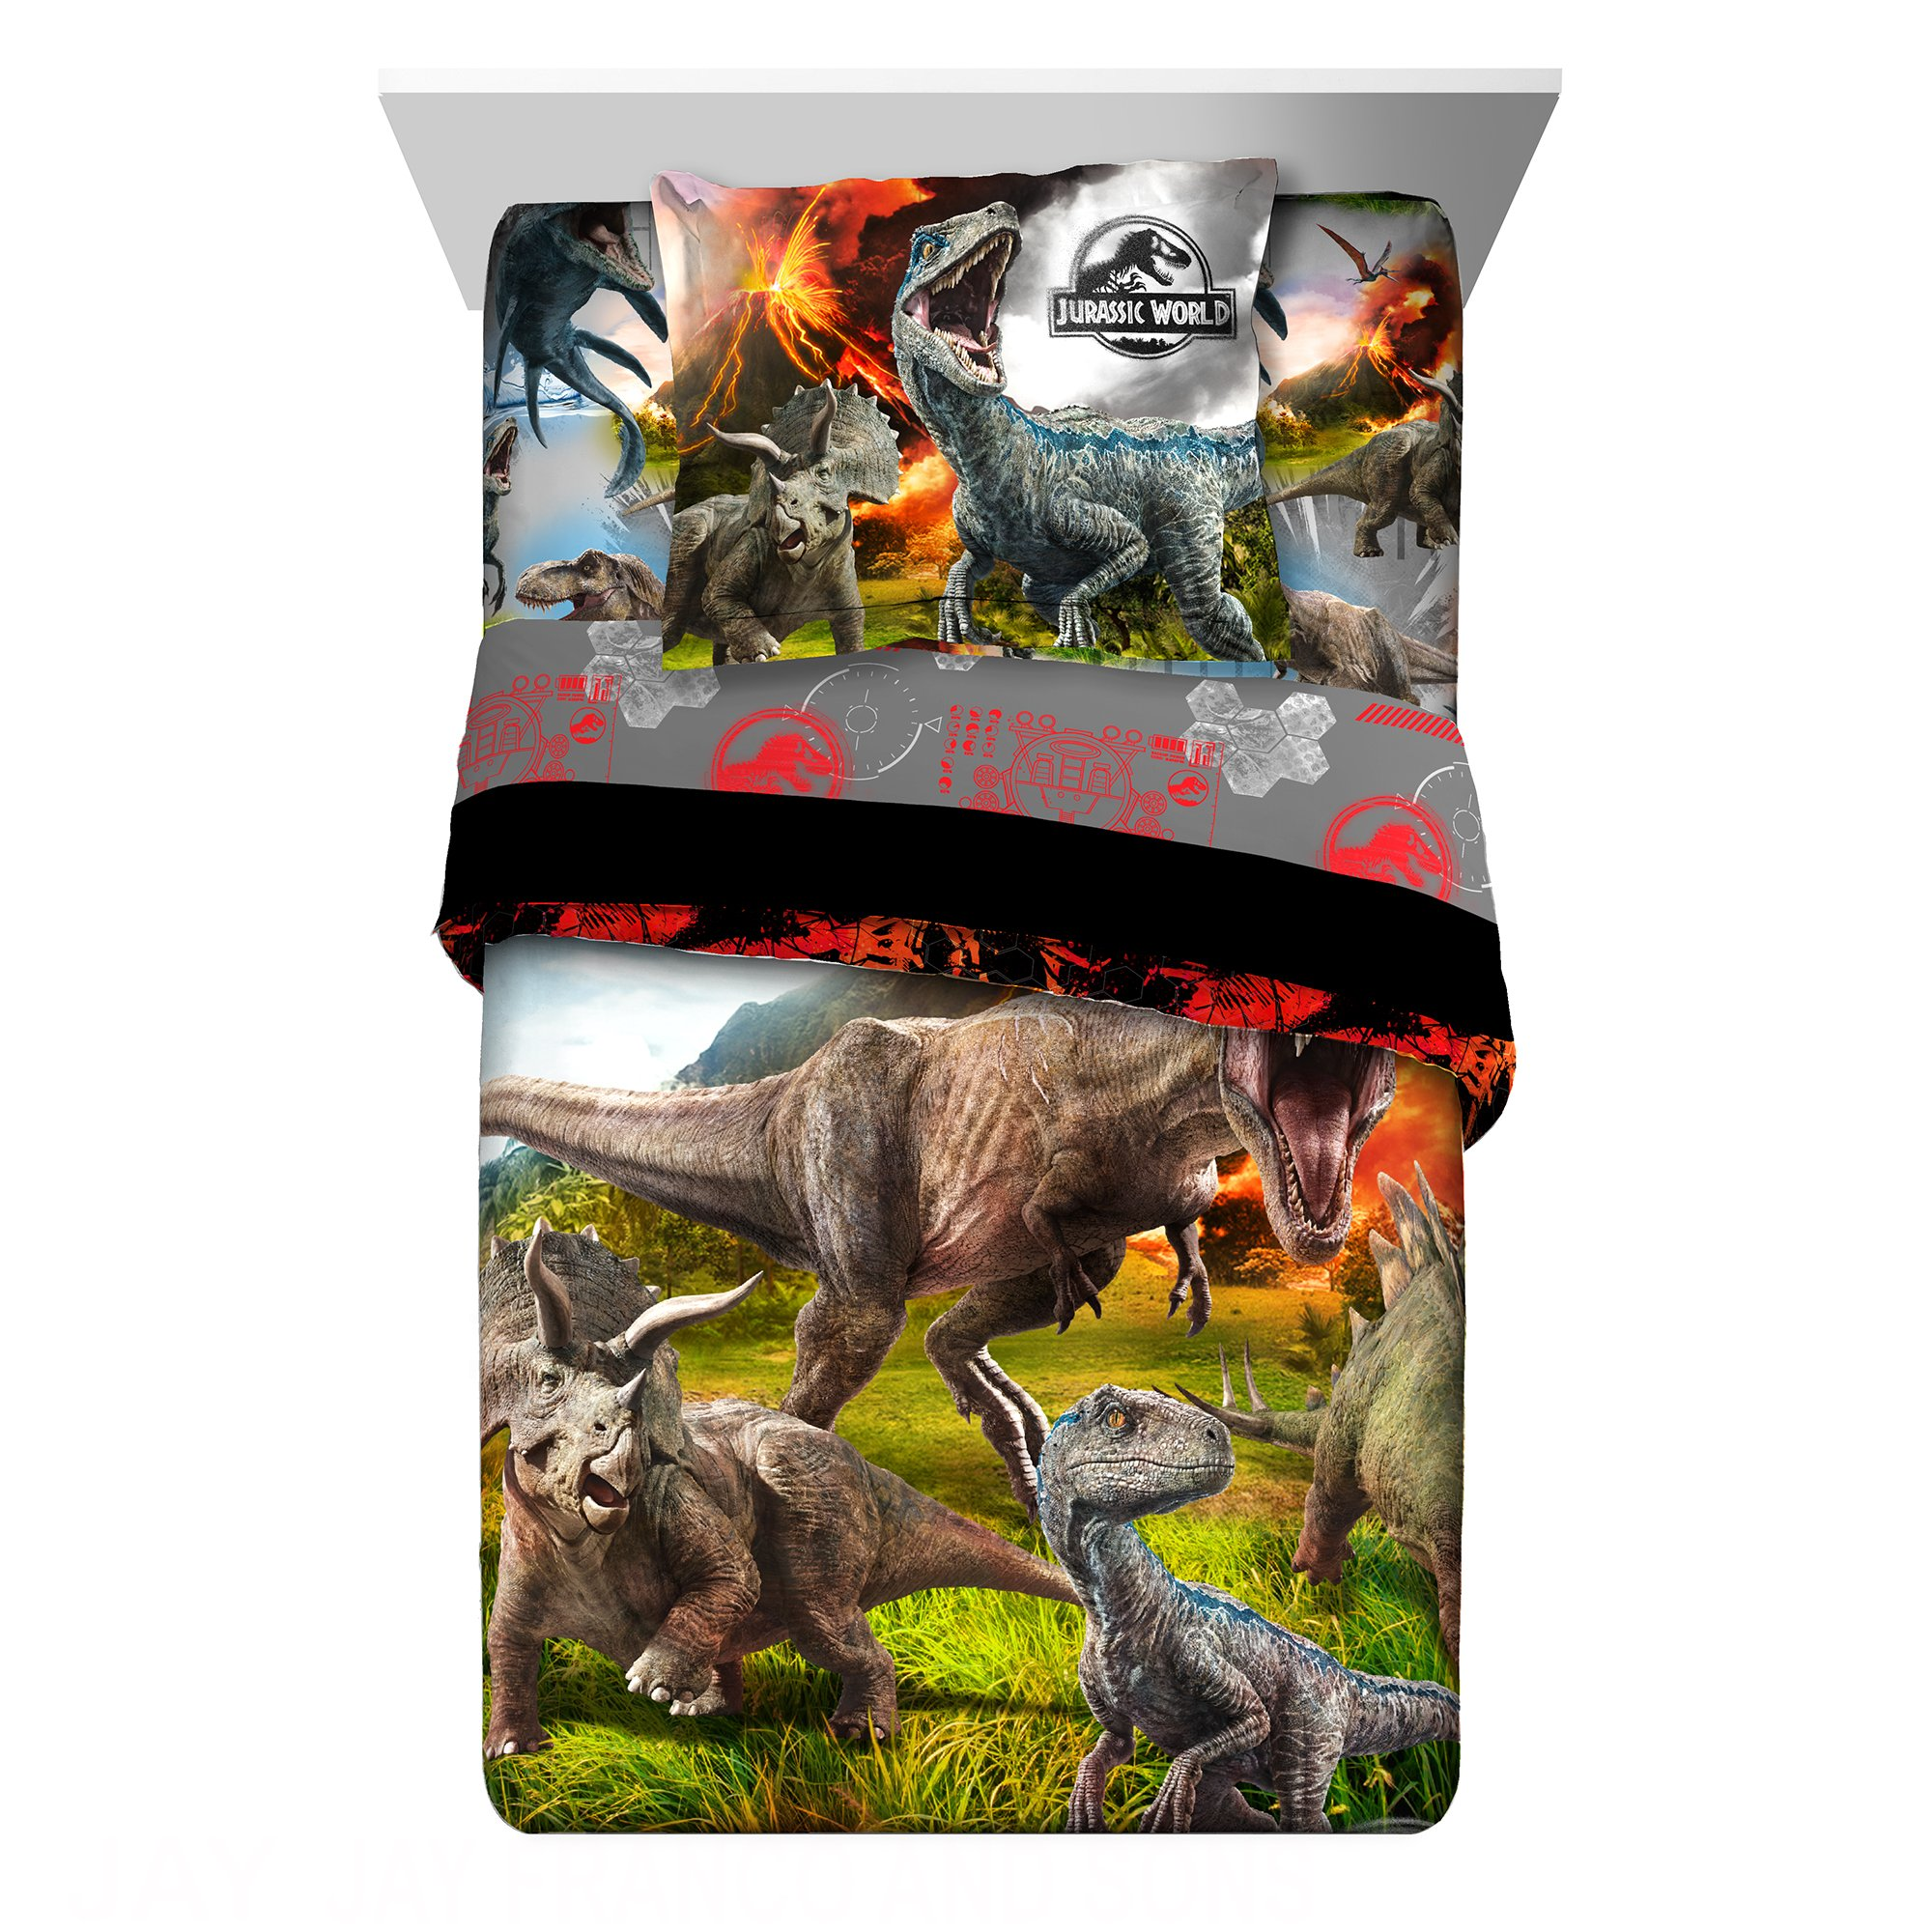 Franco Universal Jurassic World 2 'Eruption' 2pc Kids Bedding Twin/Full Comforter with Sham